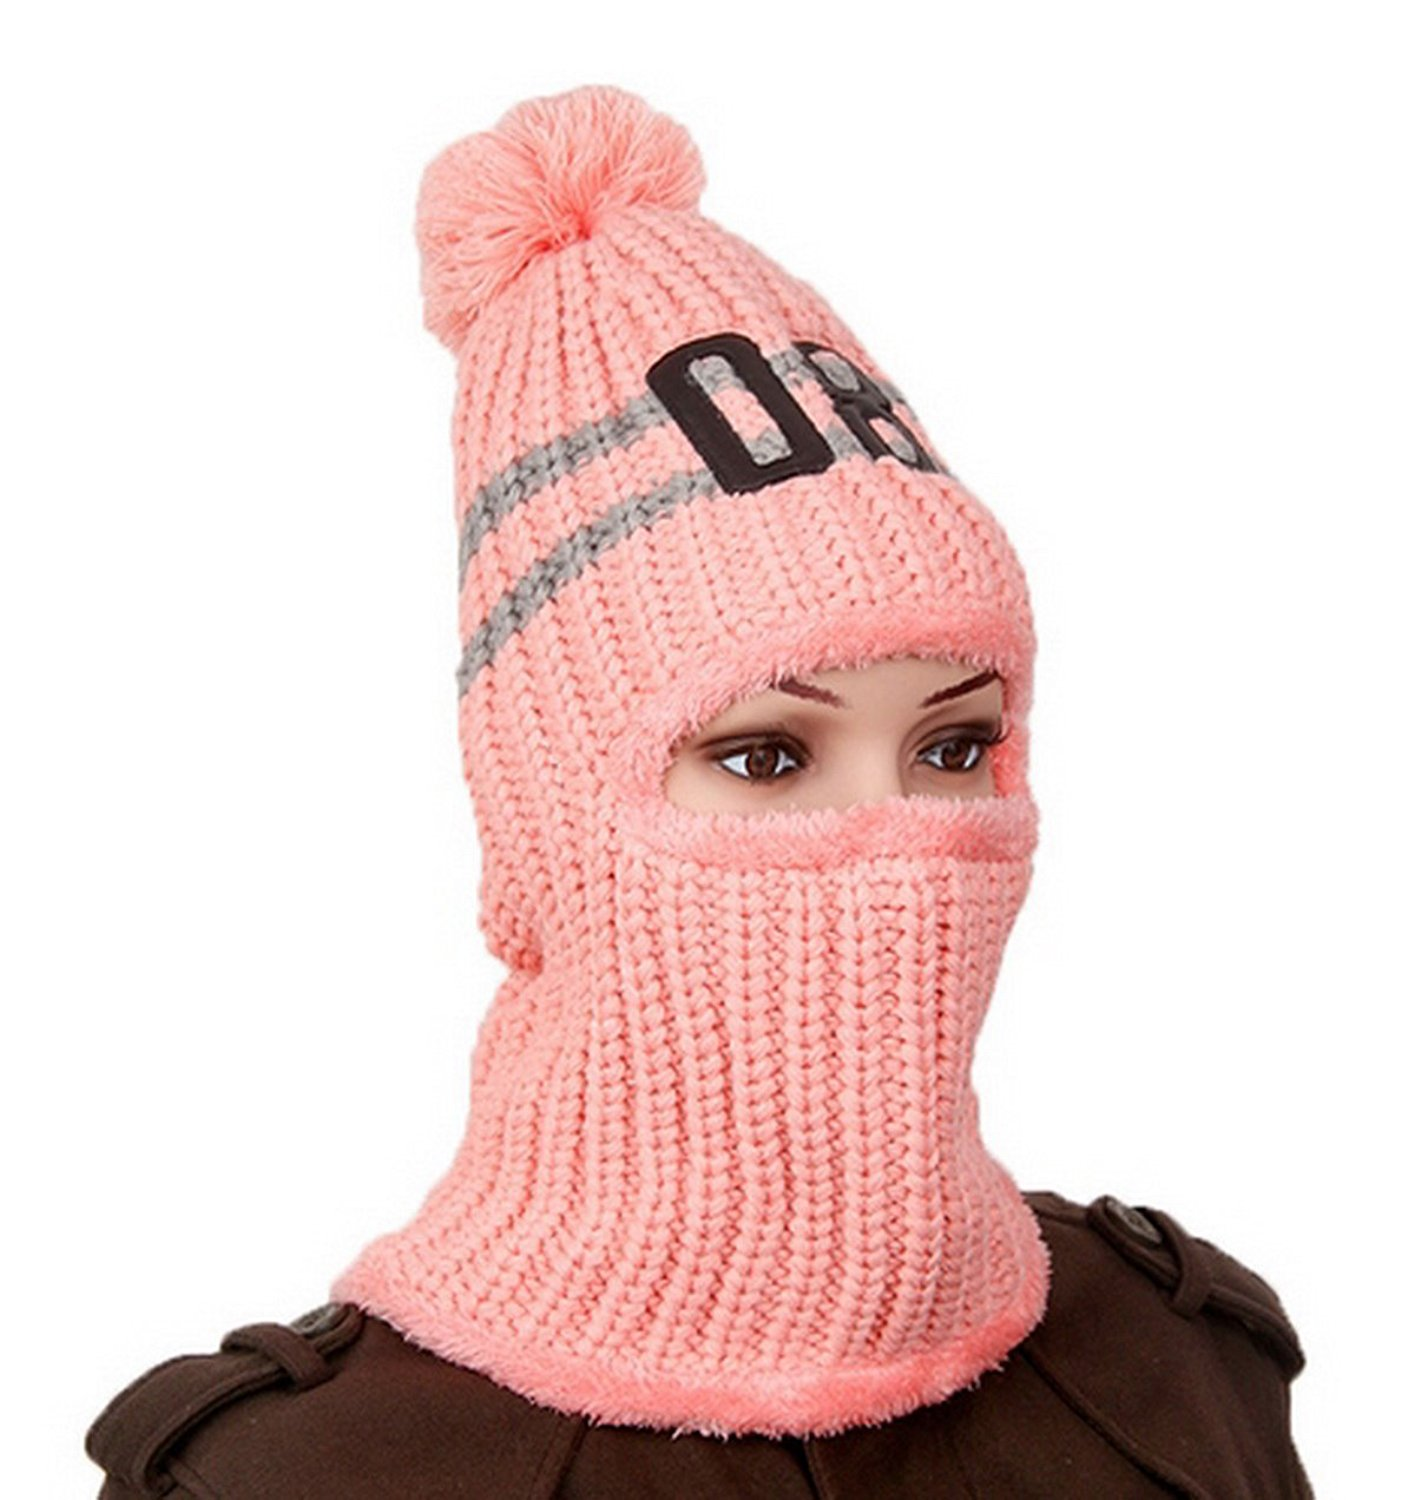 fcd2059263a Get Quotations · Windproof Knitted Ski Mask Balaclava Trapper Trooper Hat  Motorcycle Neck Warmer